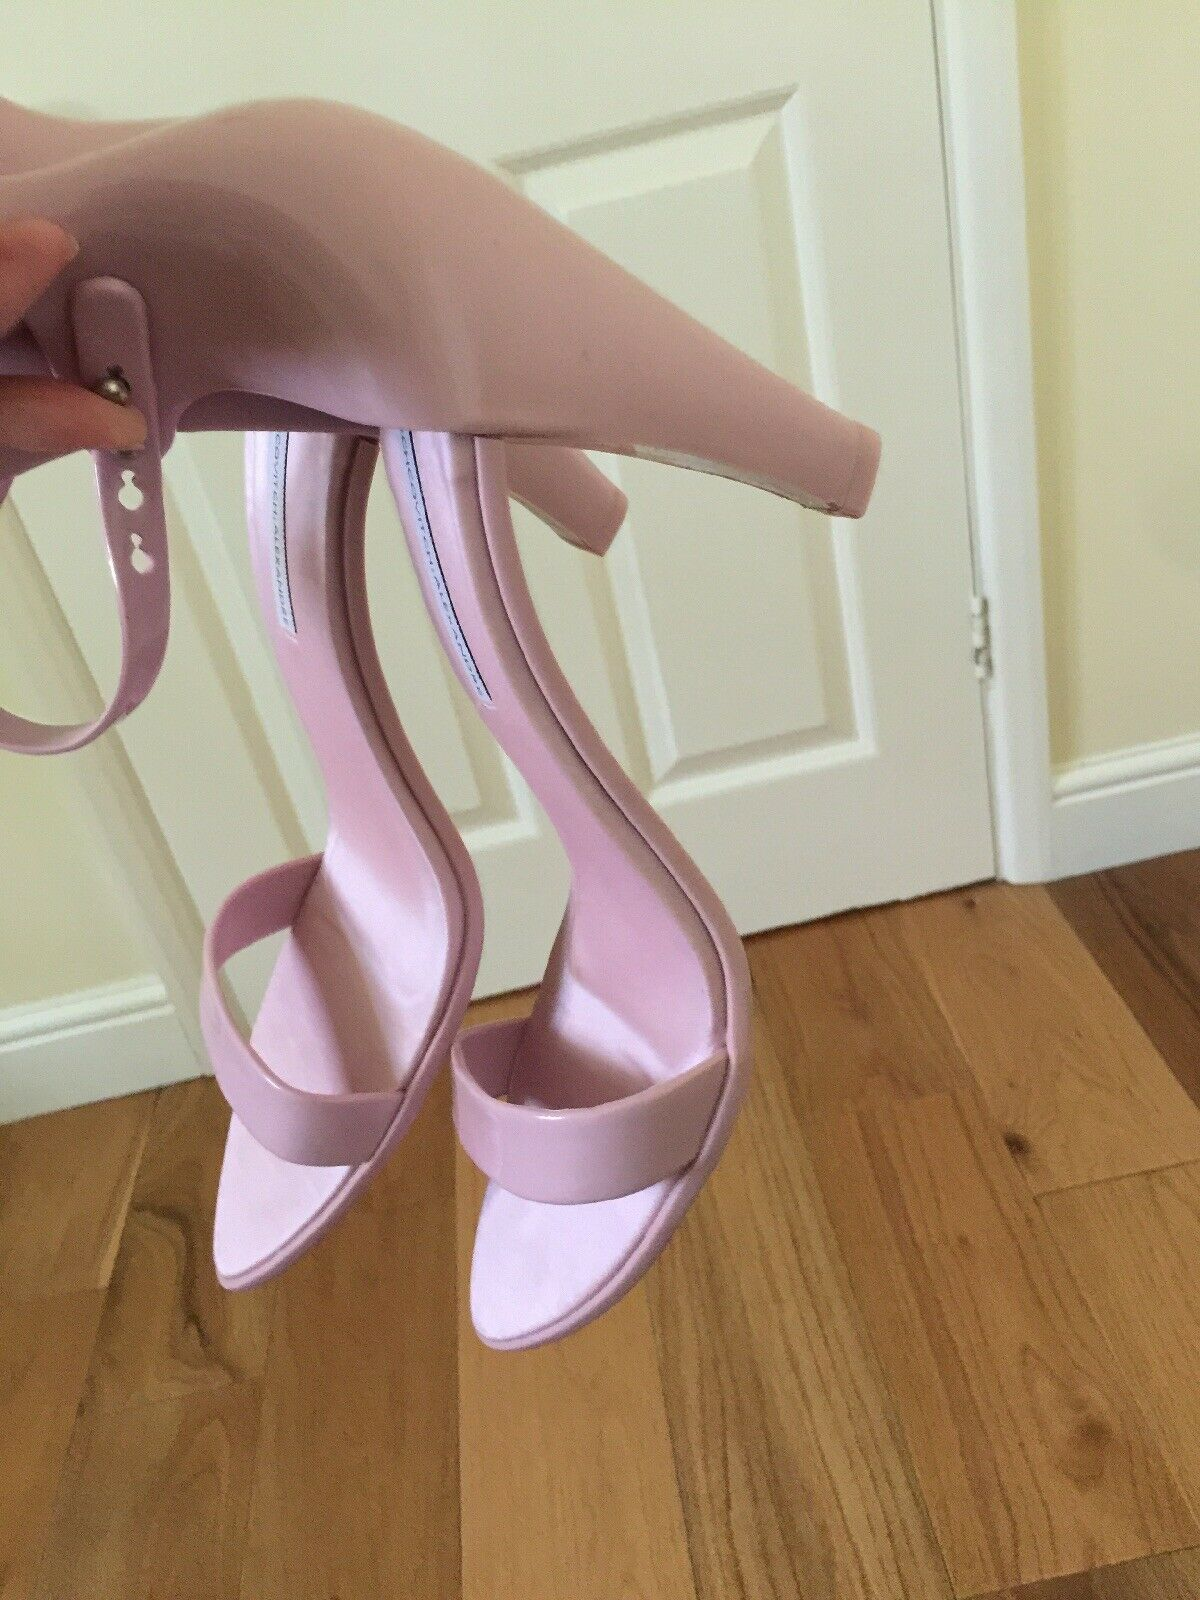 Alexandre Herchcovitch for Melissa Pink Nude Sandals Size 8UK